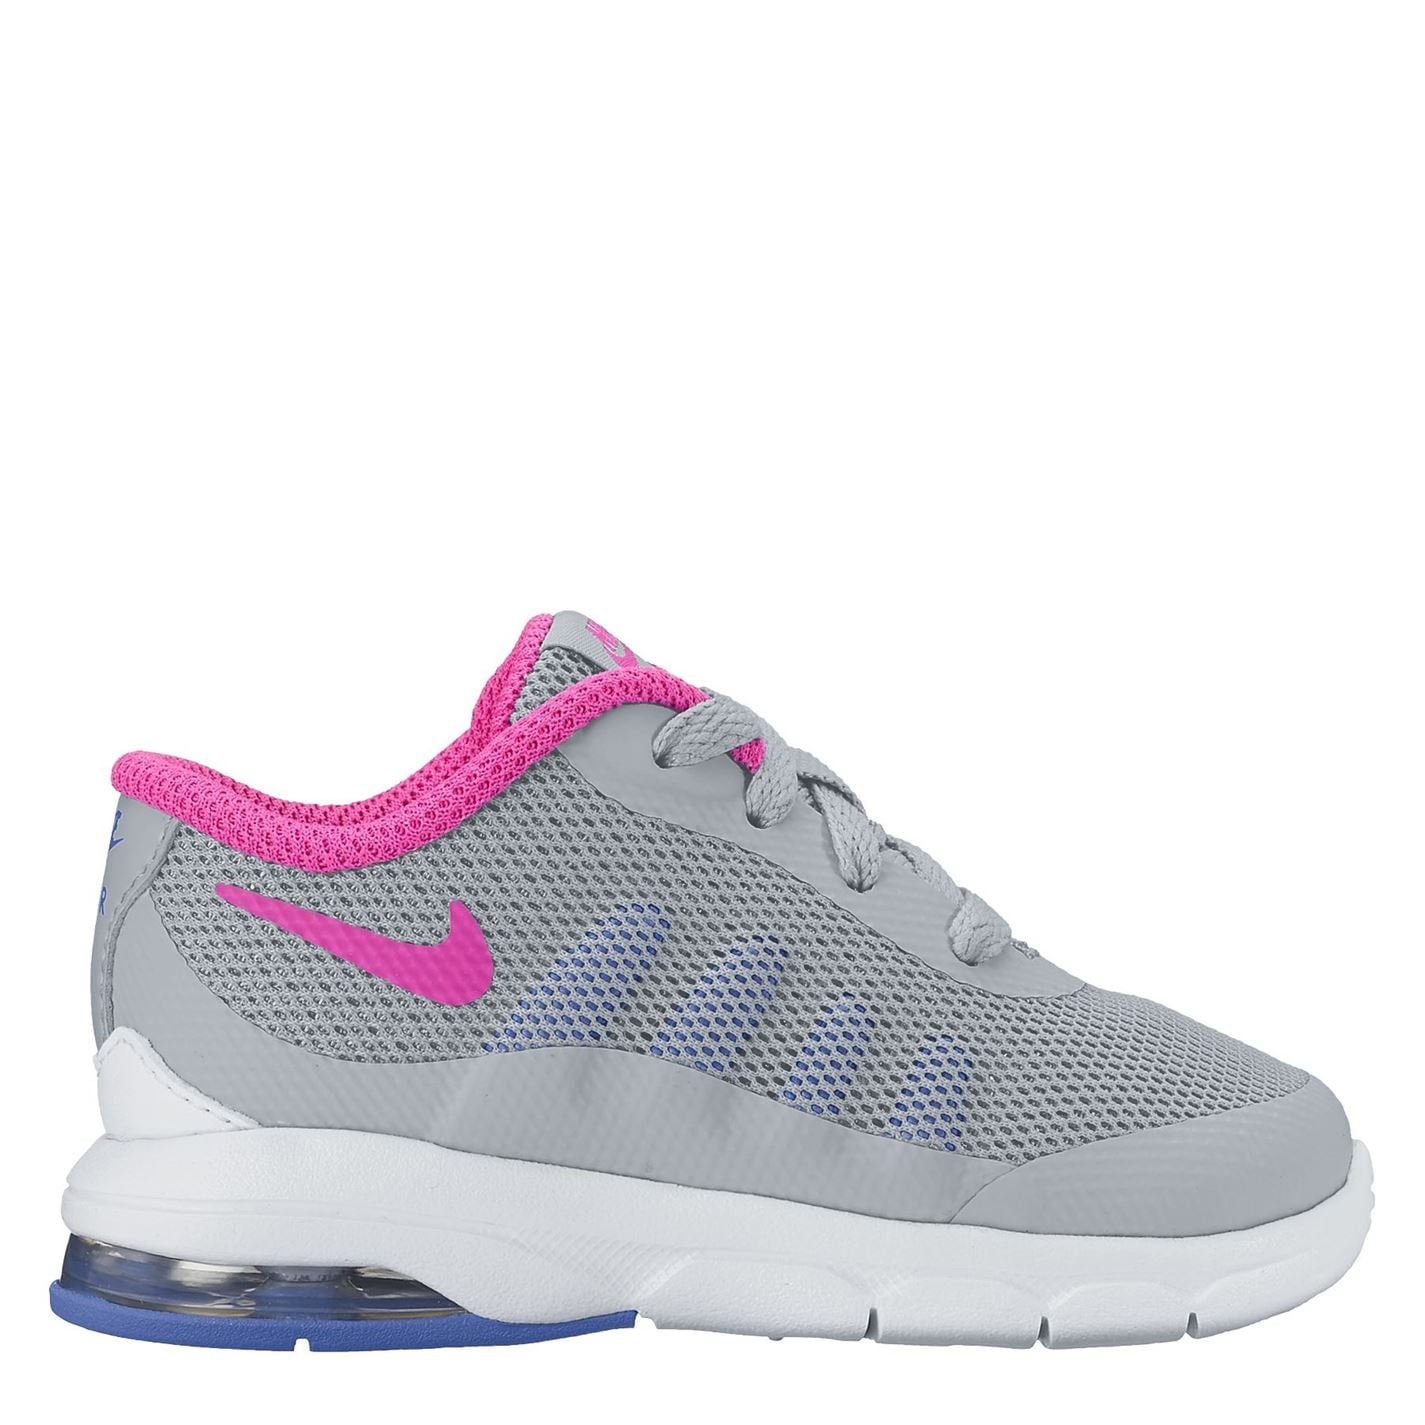 Nike Air Max Invigor Trianers Infant Girls Grey/Pink